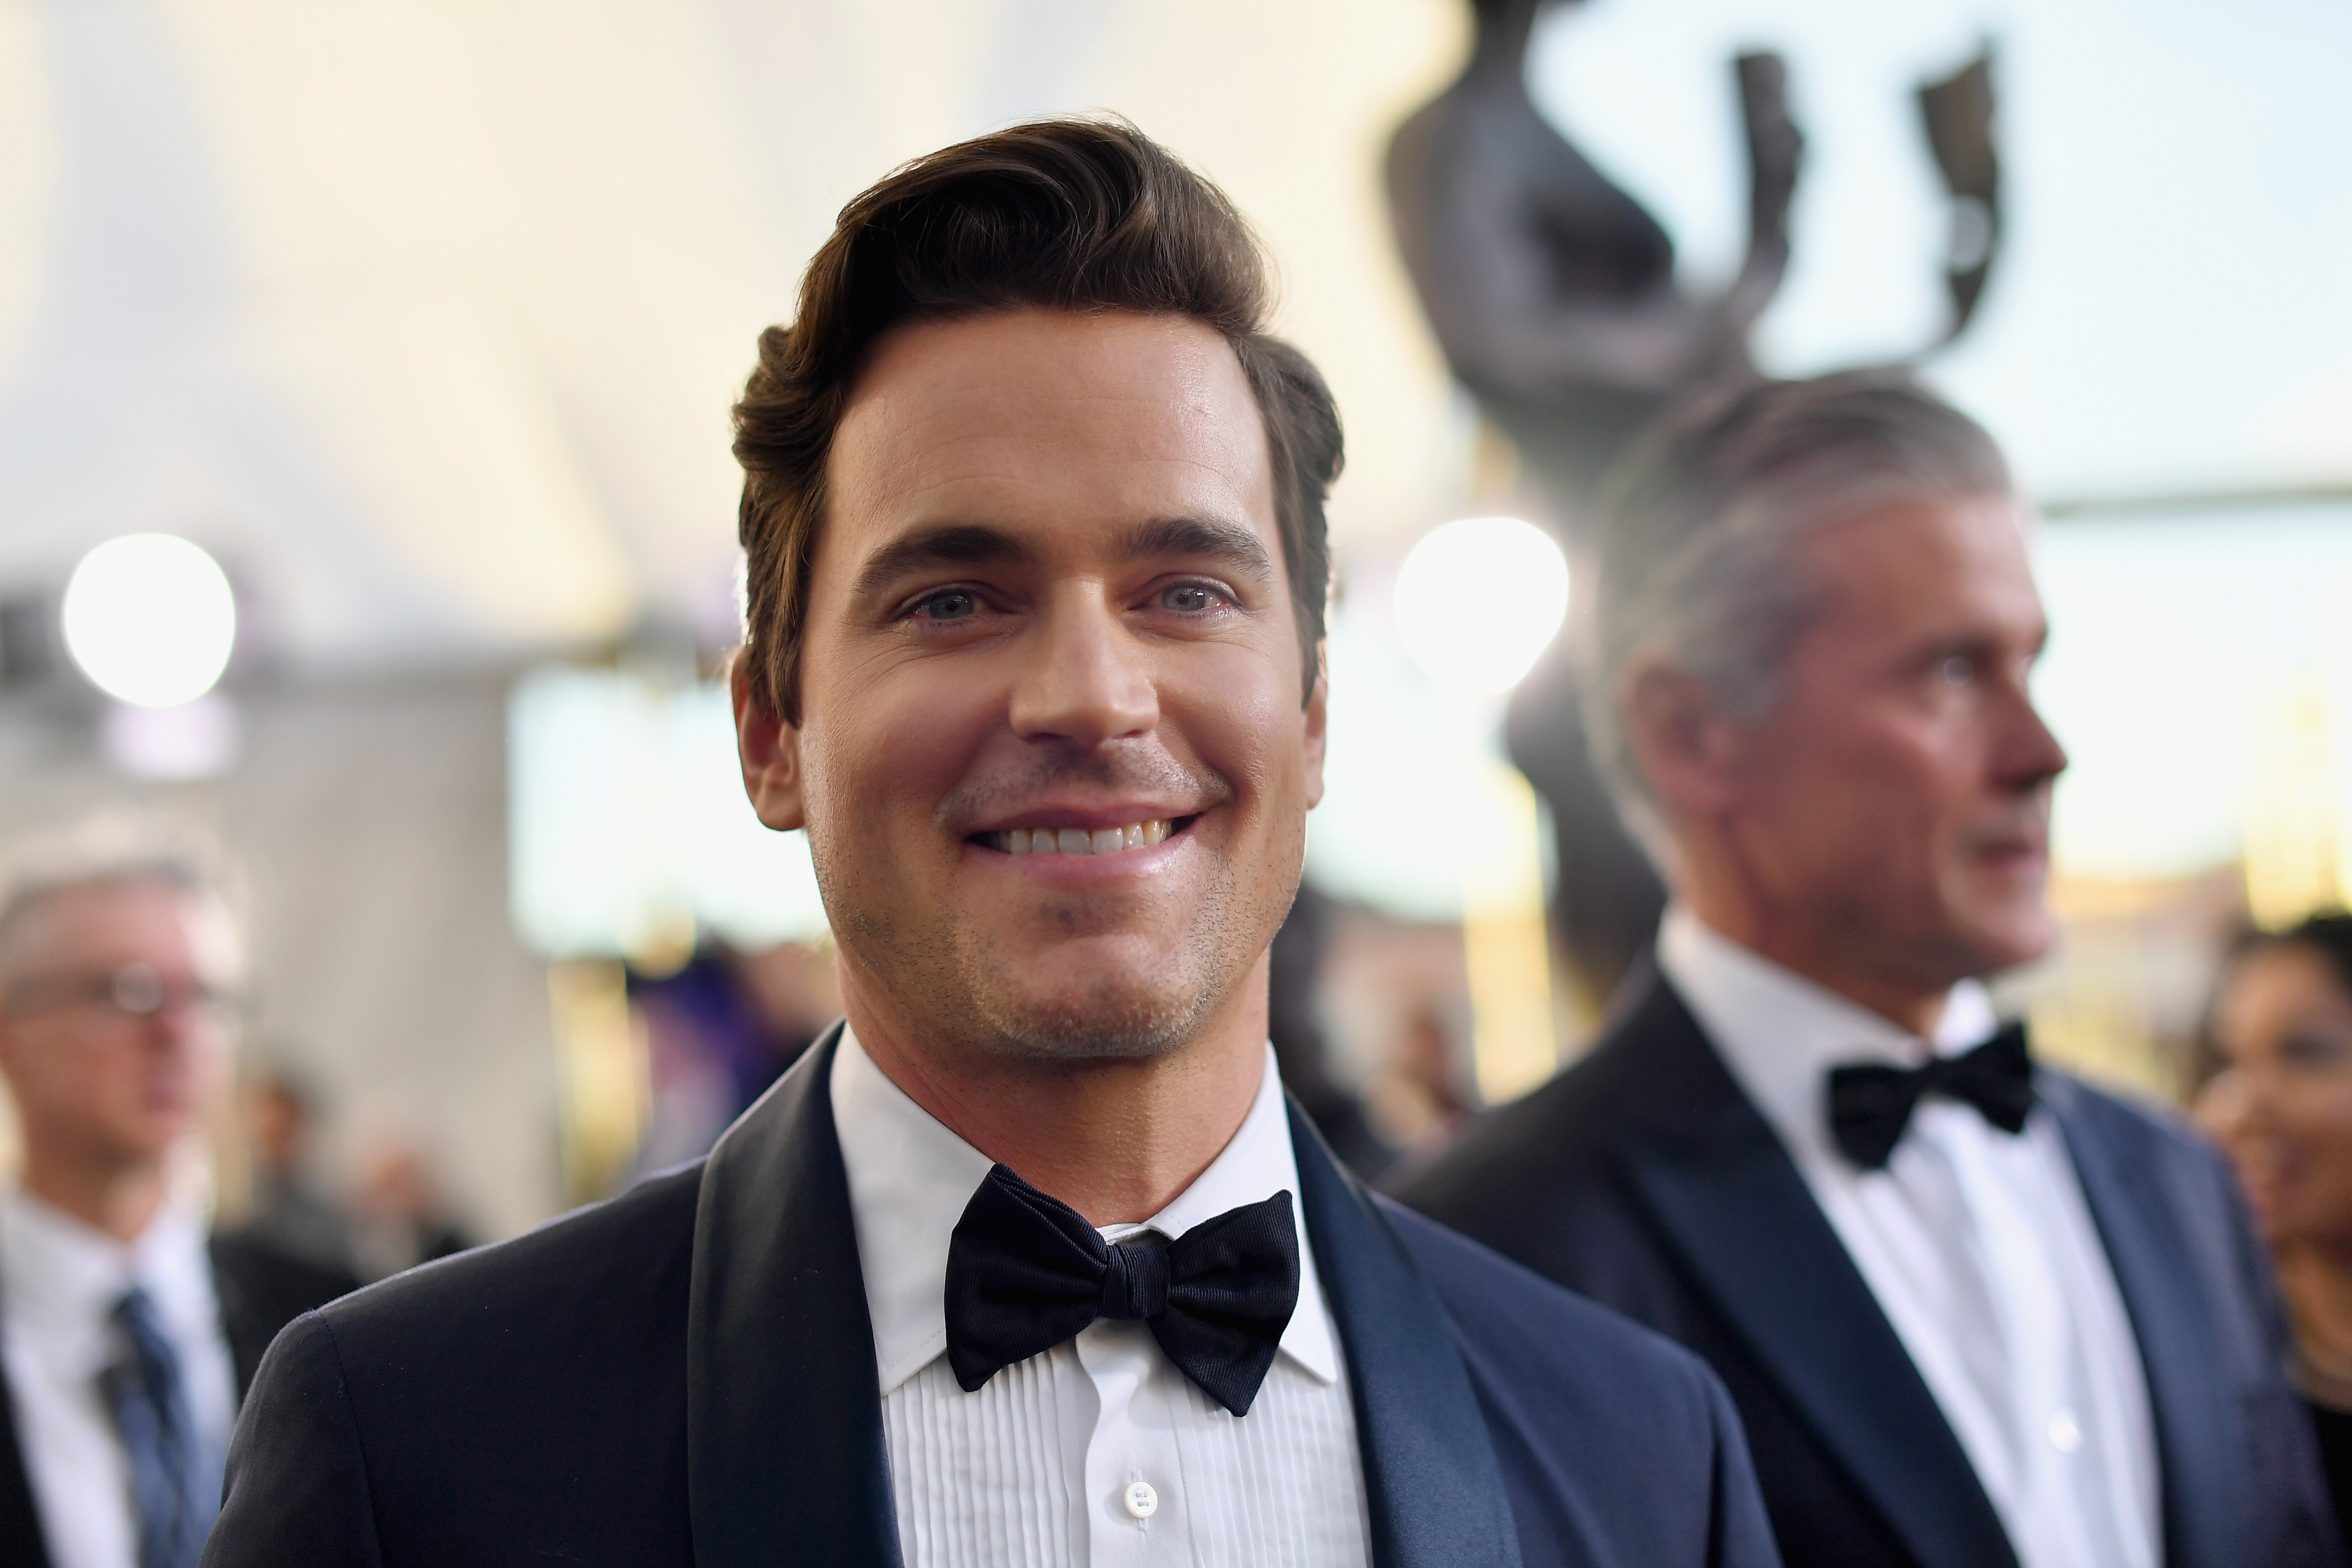 Matt Bomer attends the 25th Annual Screen ActorsGuild Awards at The Shrine Auditorium on January 27, 2019 in Los Angeles, California.